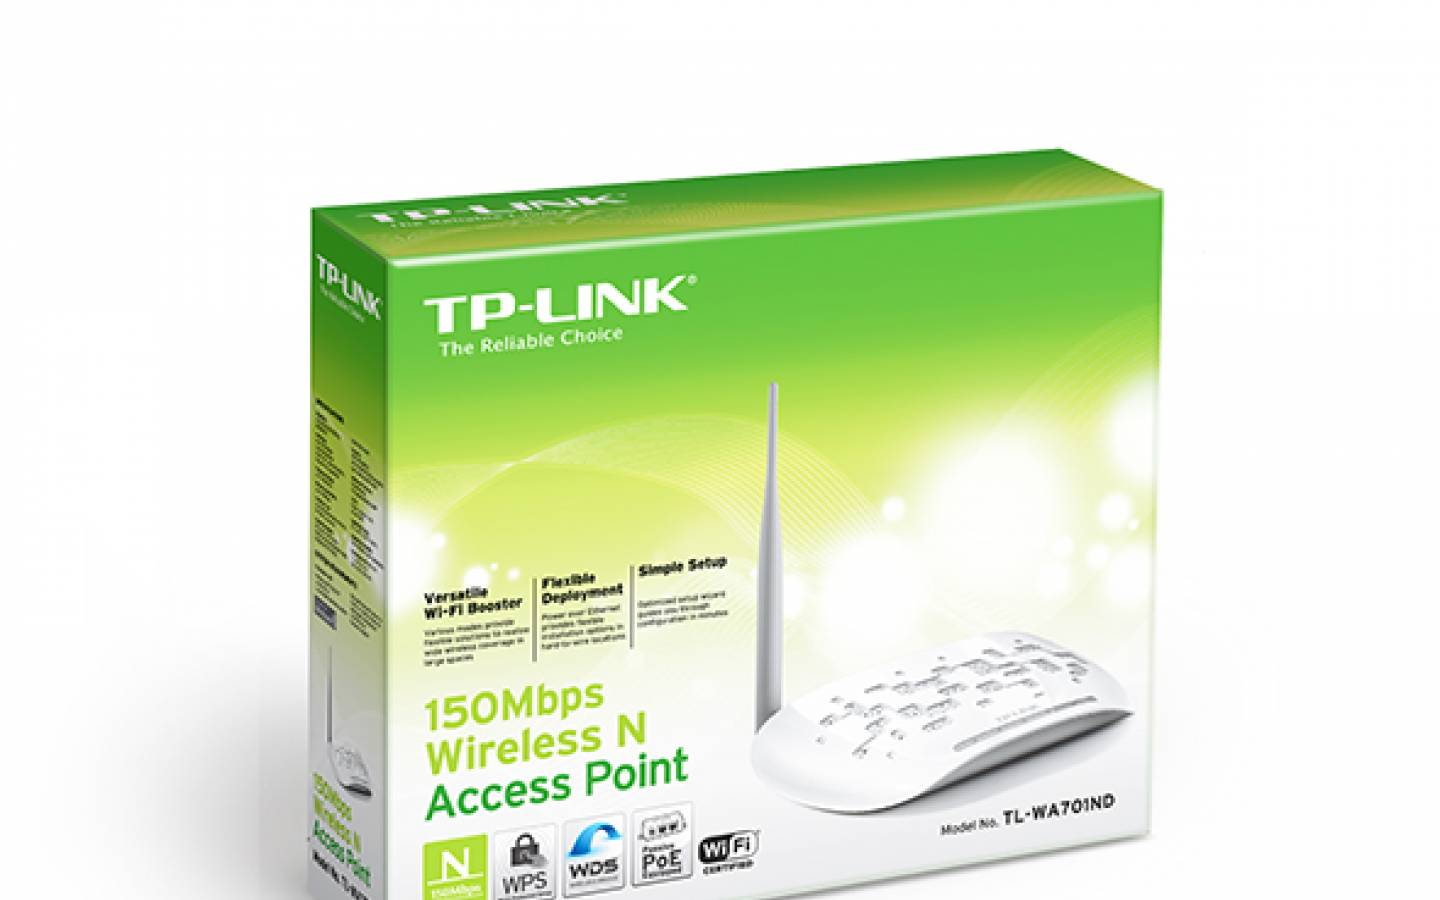 ACCES POINT TL-WA701ND WIFI 150MBPS